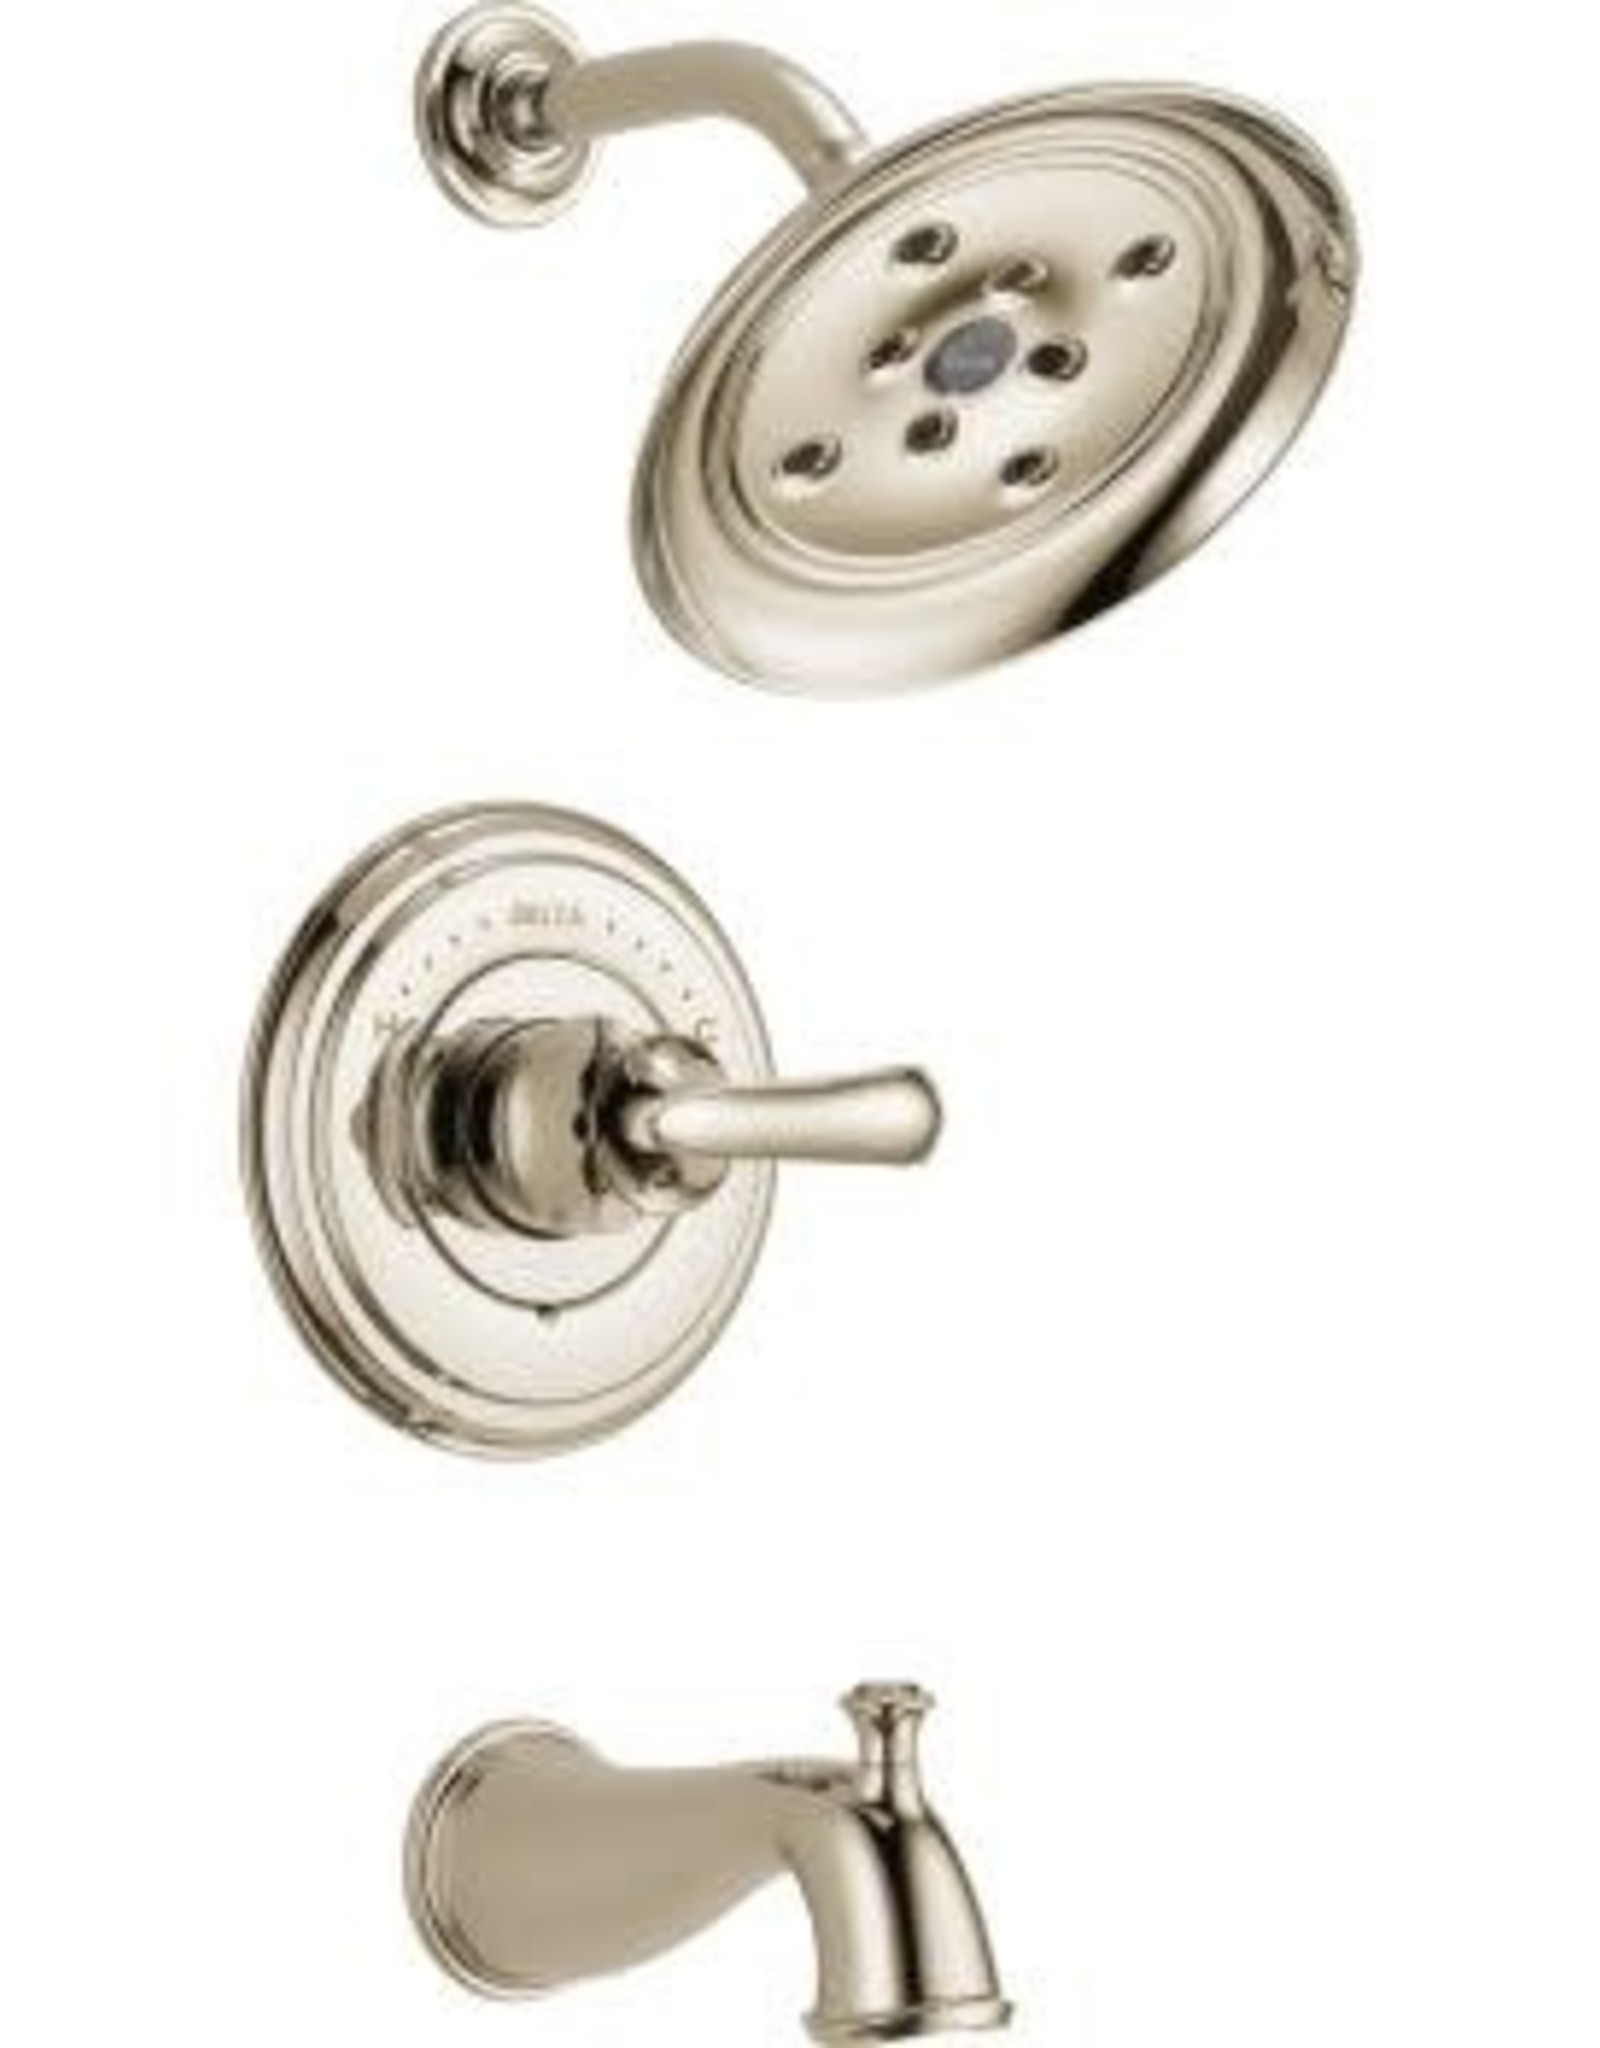 Delta DELTA CASSIDY - POLISHED NICKEL MONITOR 14 SERIES TUB & SHOWER TRIM LESS HANDLES